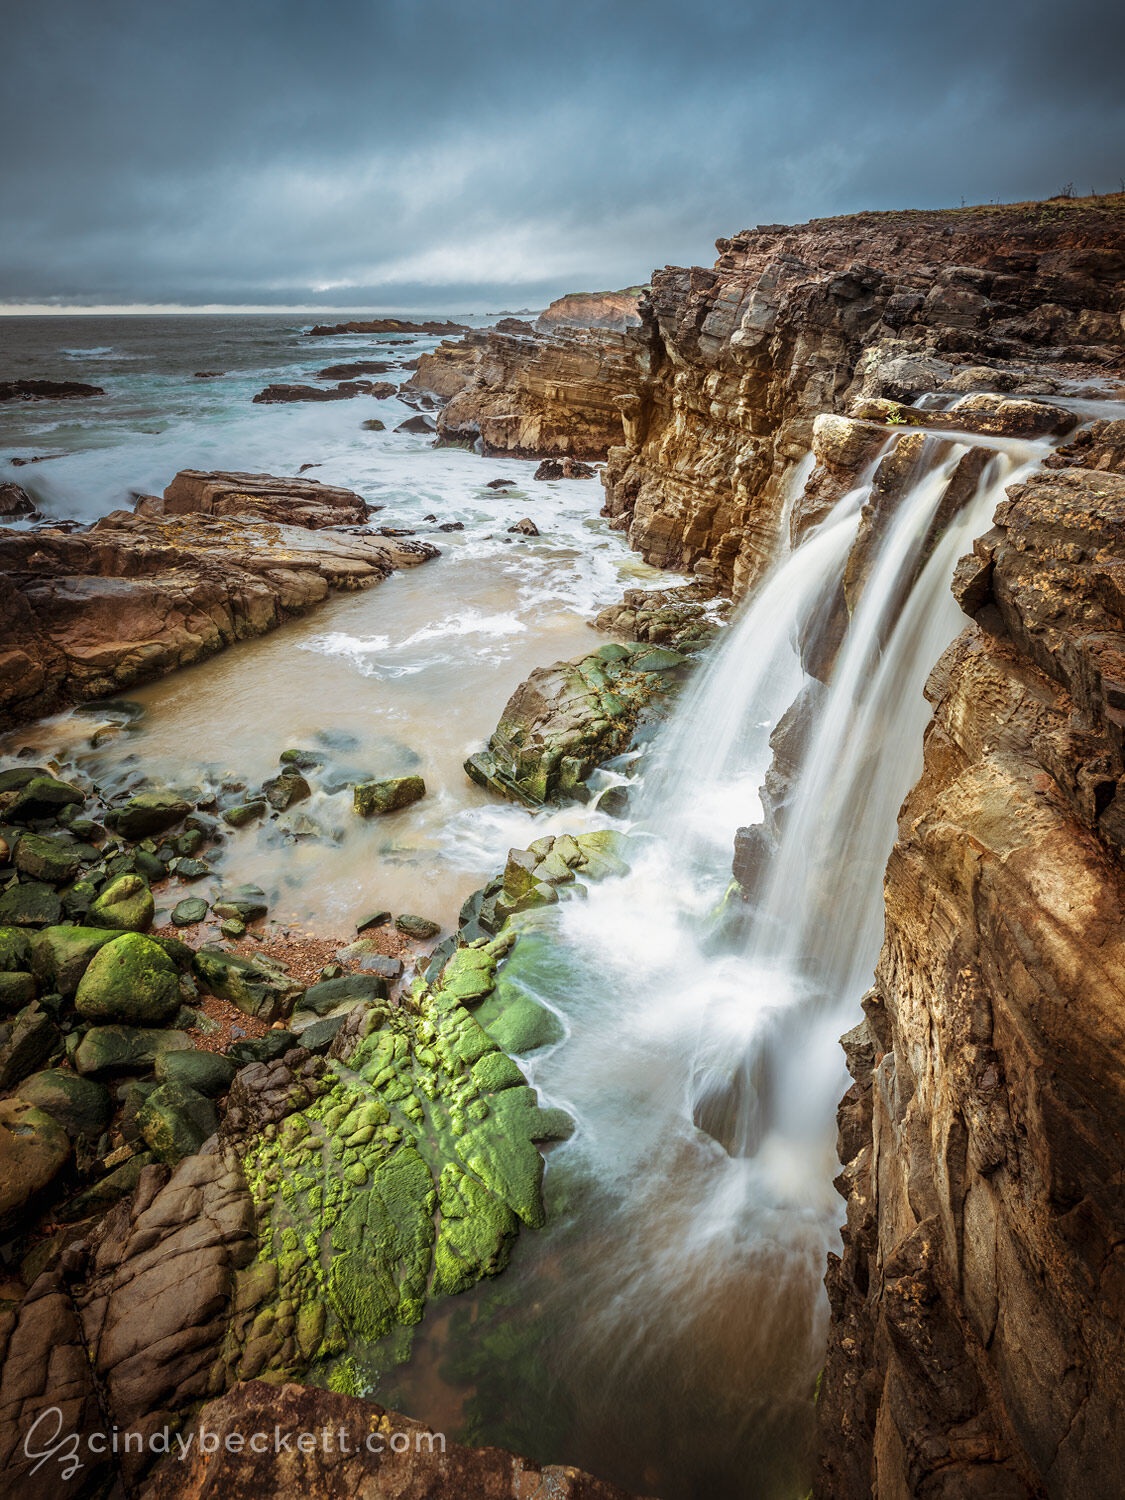 A seasonal waterfall on the California coast runs with strong water from spring rains, bringing to life moss on the rocky beach and returning water to the ocean